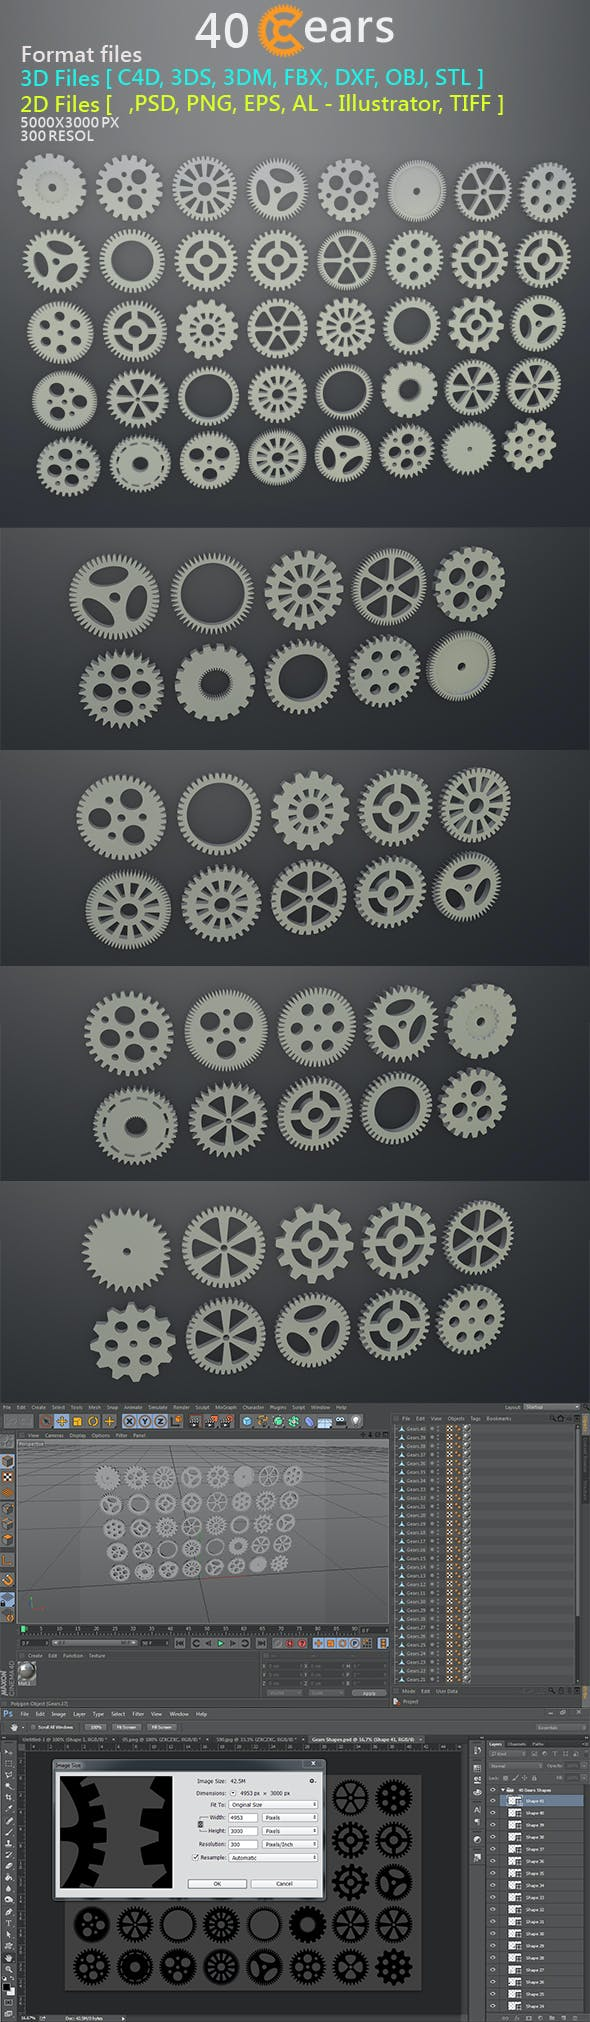 40 Gears 3D&2D Format files - 3DOcean Item for Sale